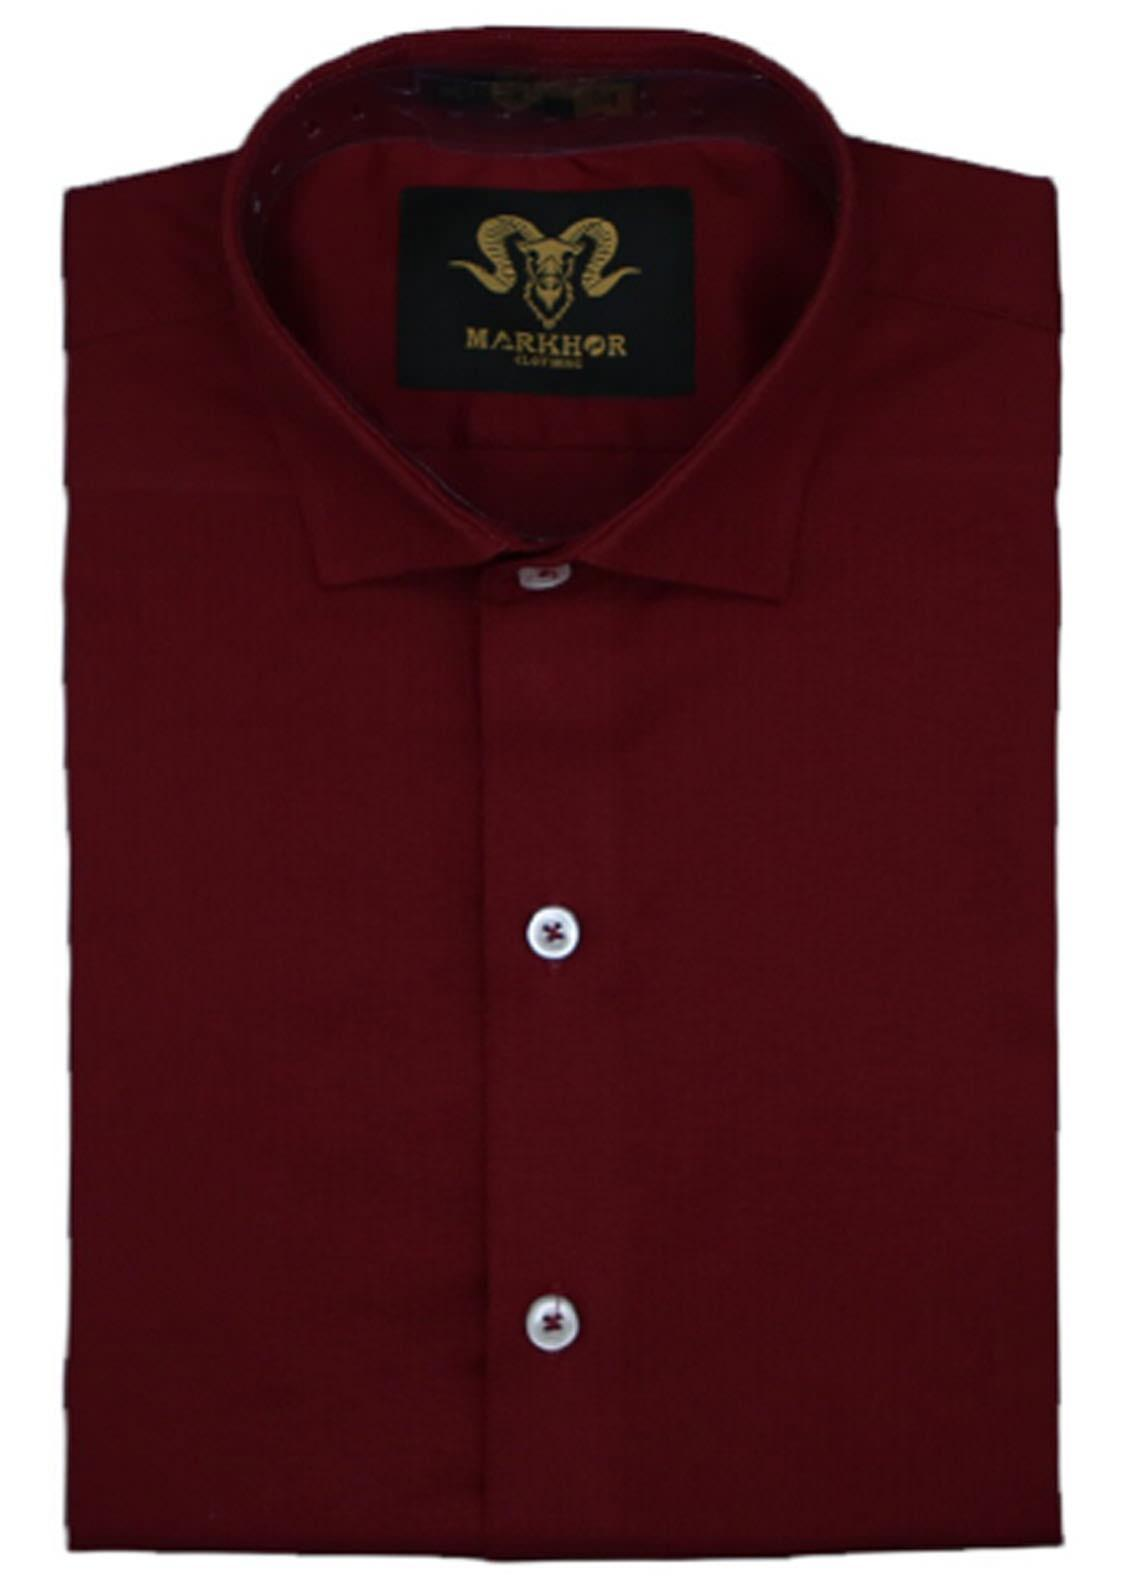 Markhor Clothing Chambray Cotton Formal Shirts for Men - Maroon Magnetic  Chambray Cotton Slim Fit Formal Shirt